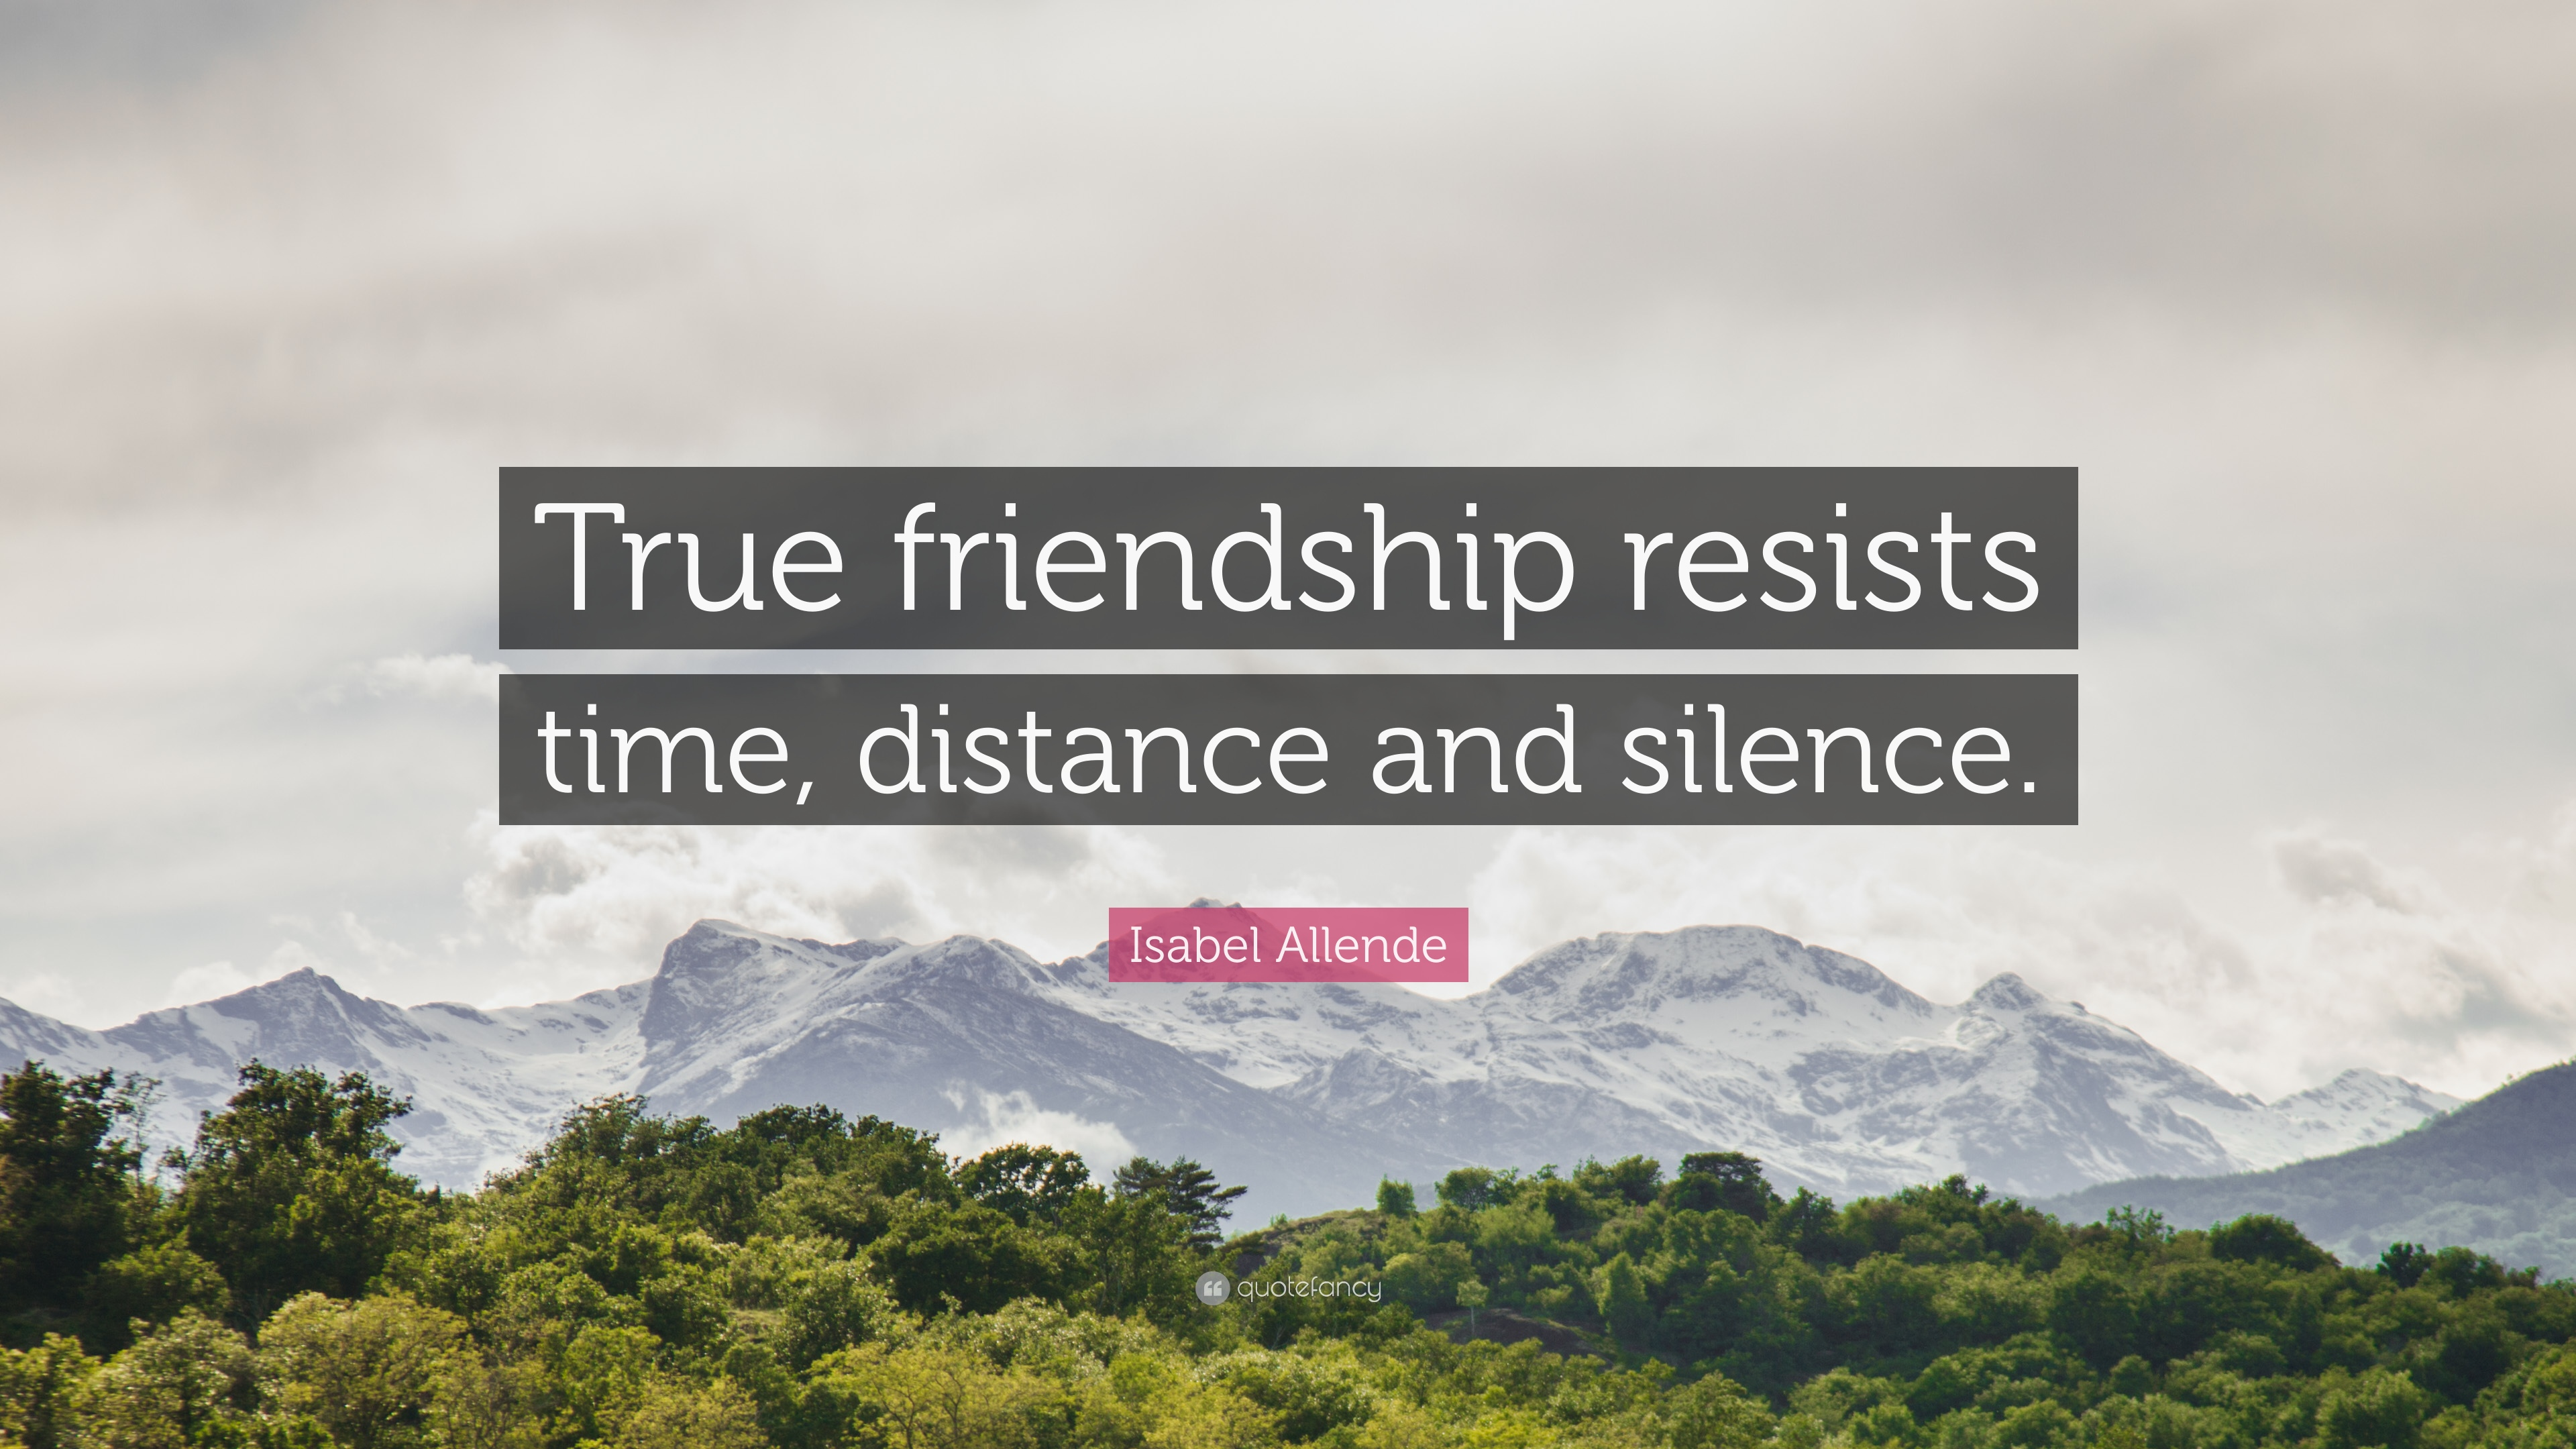 Quotes About Friendship And Distance Friendship Over Time And Distance Quotes Long Distance